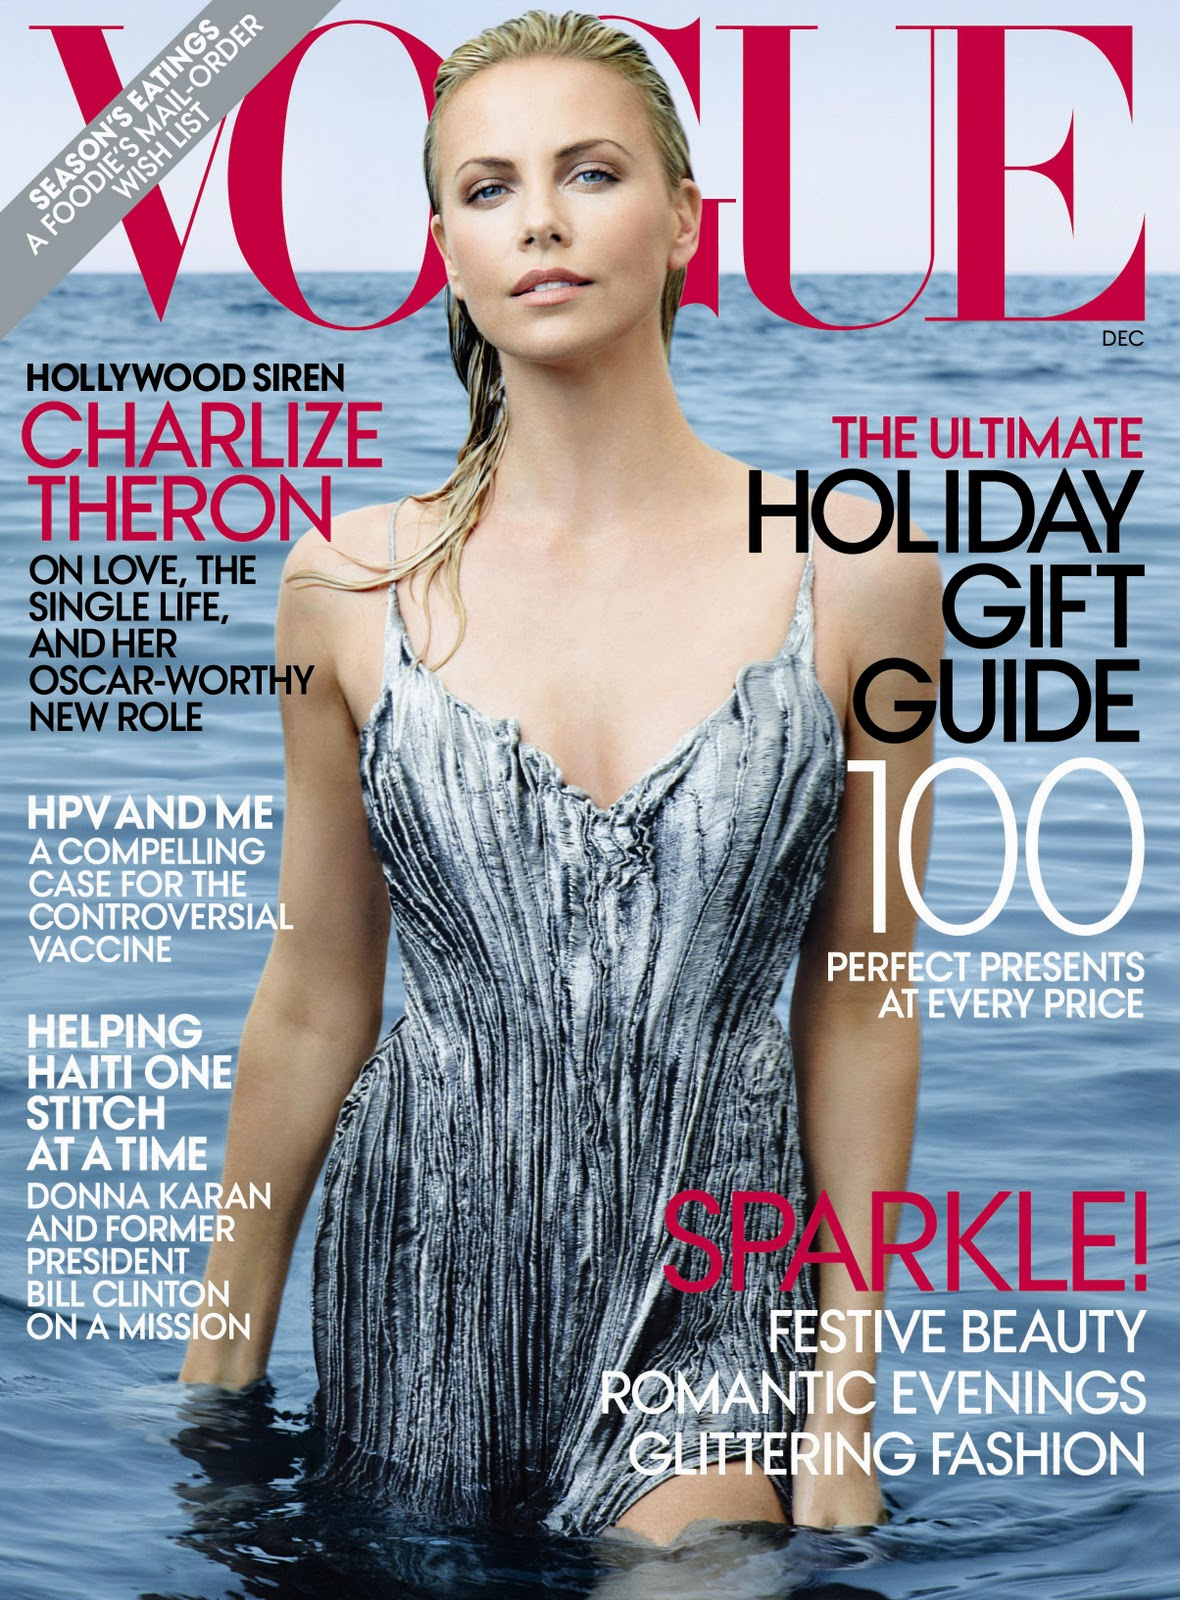 vogue future past magazine present charlize theron usa photoshoot copy